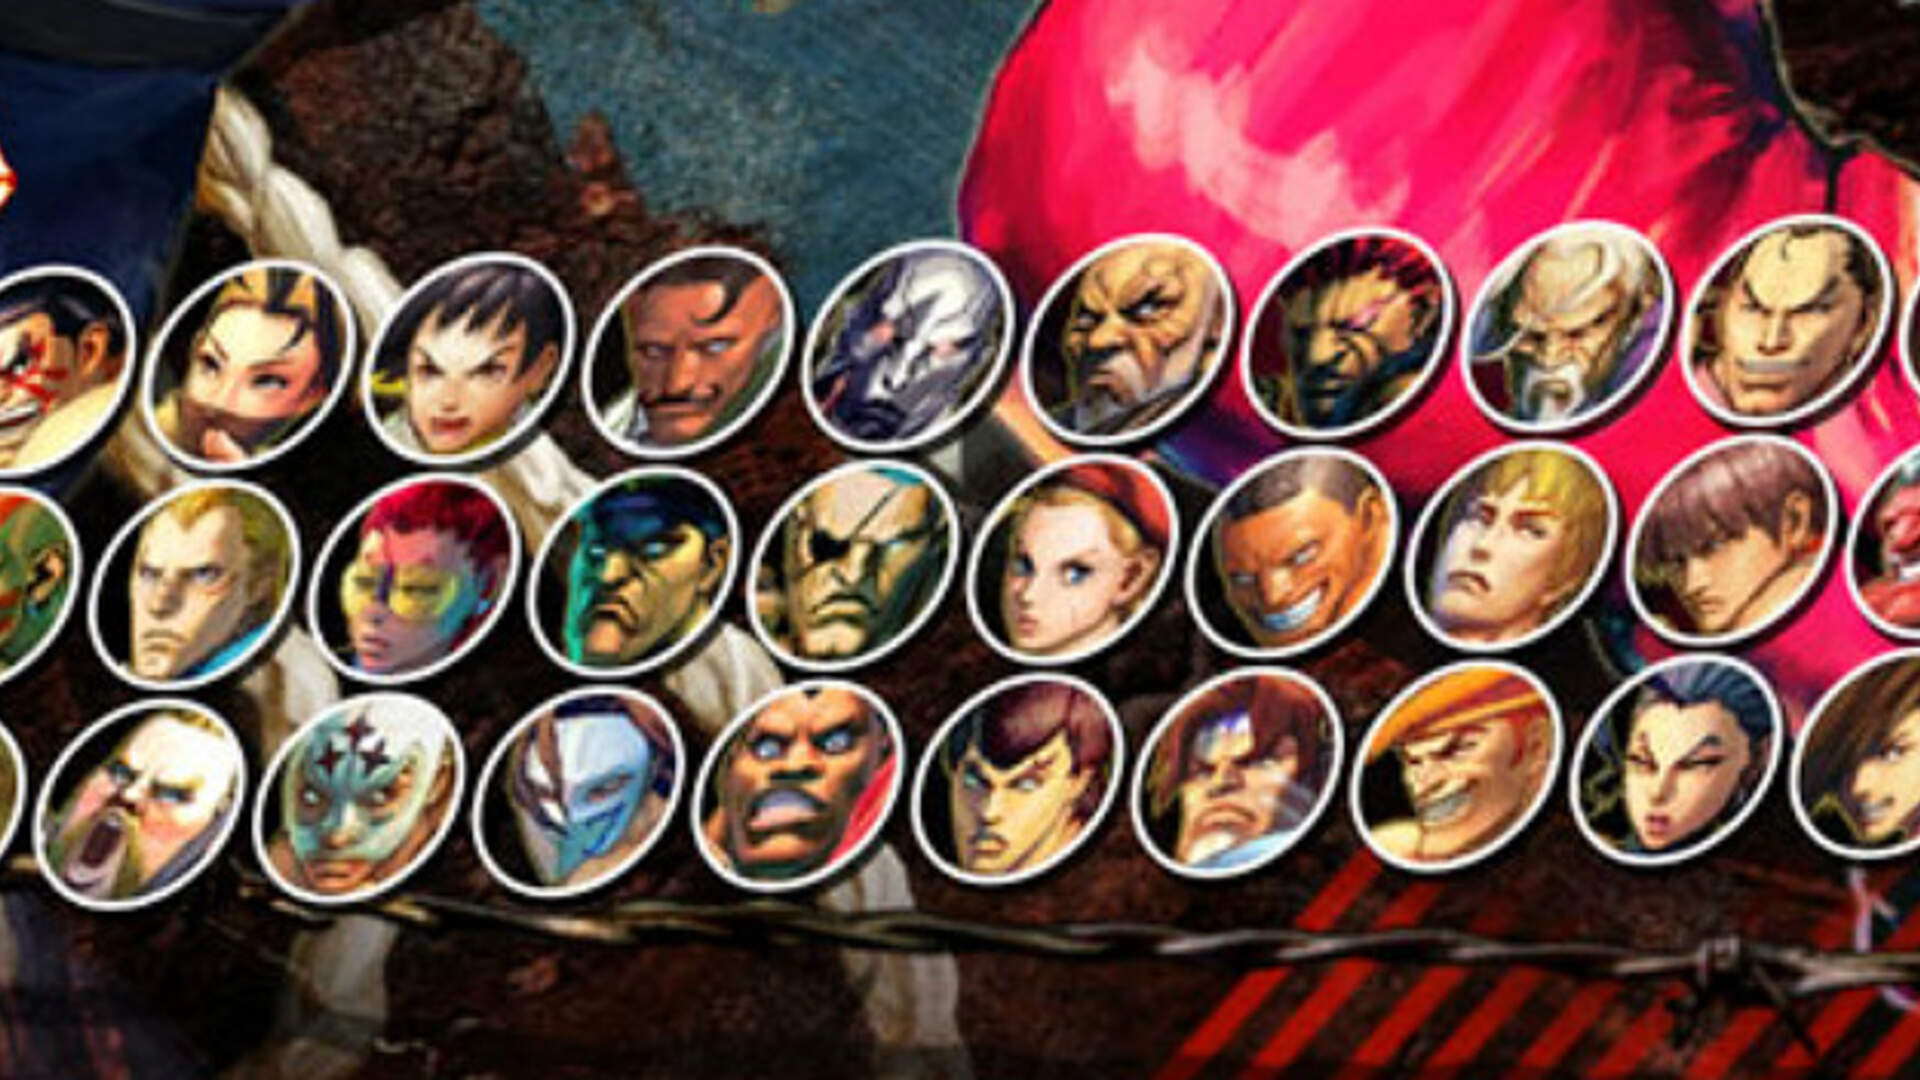 Ultra Street Fighter IV Preview: A $15 Evolution, Not a $60 Revolution